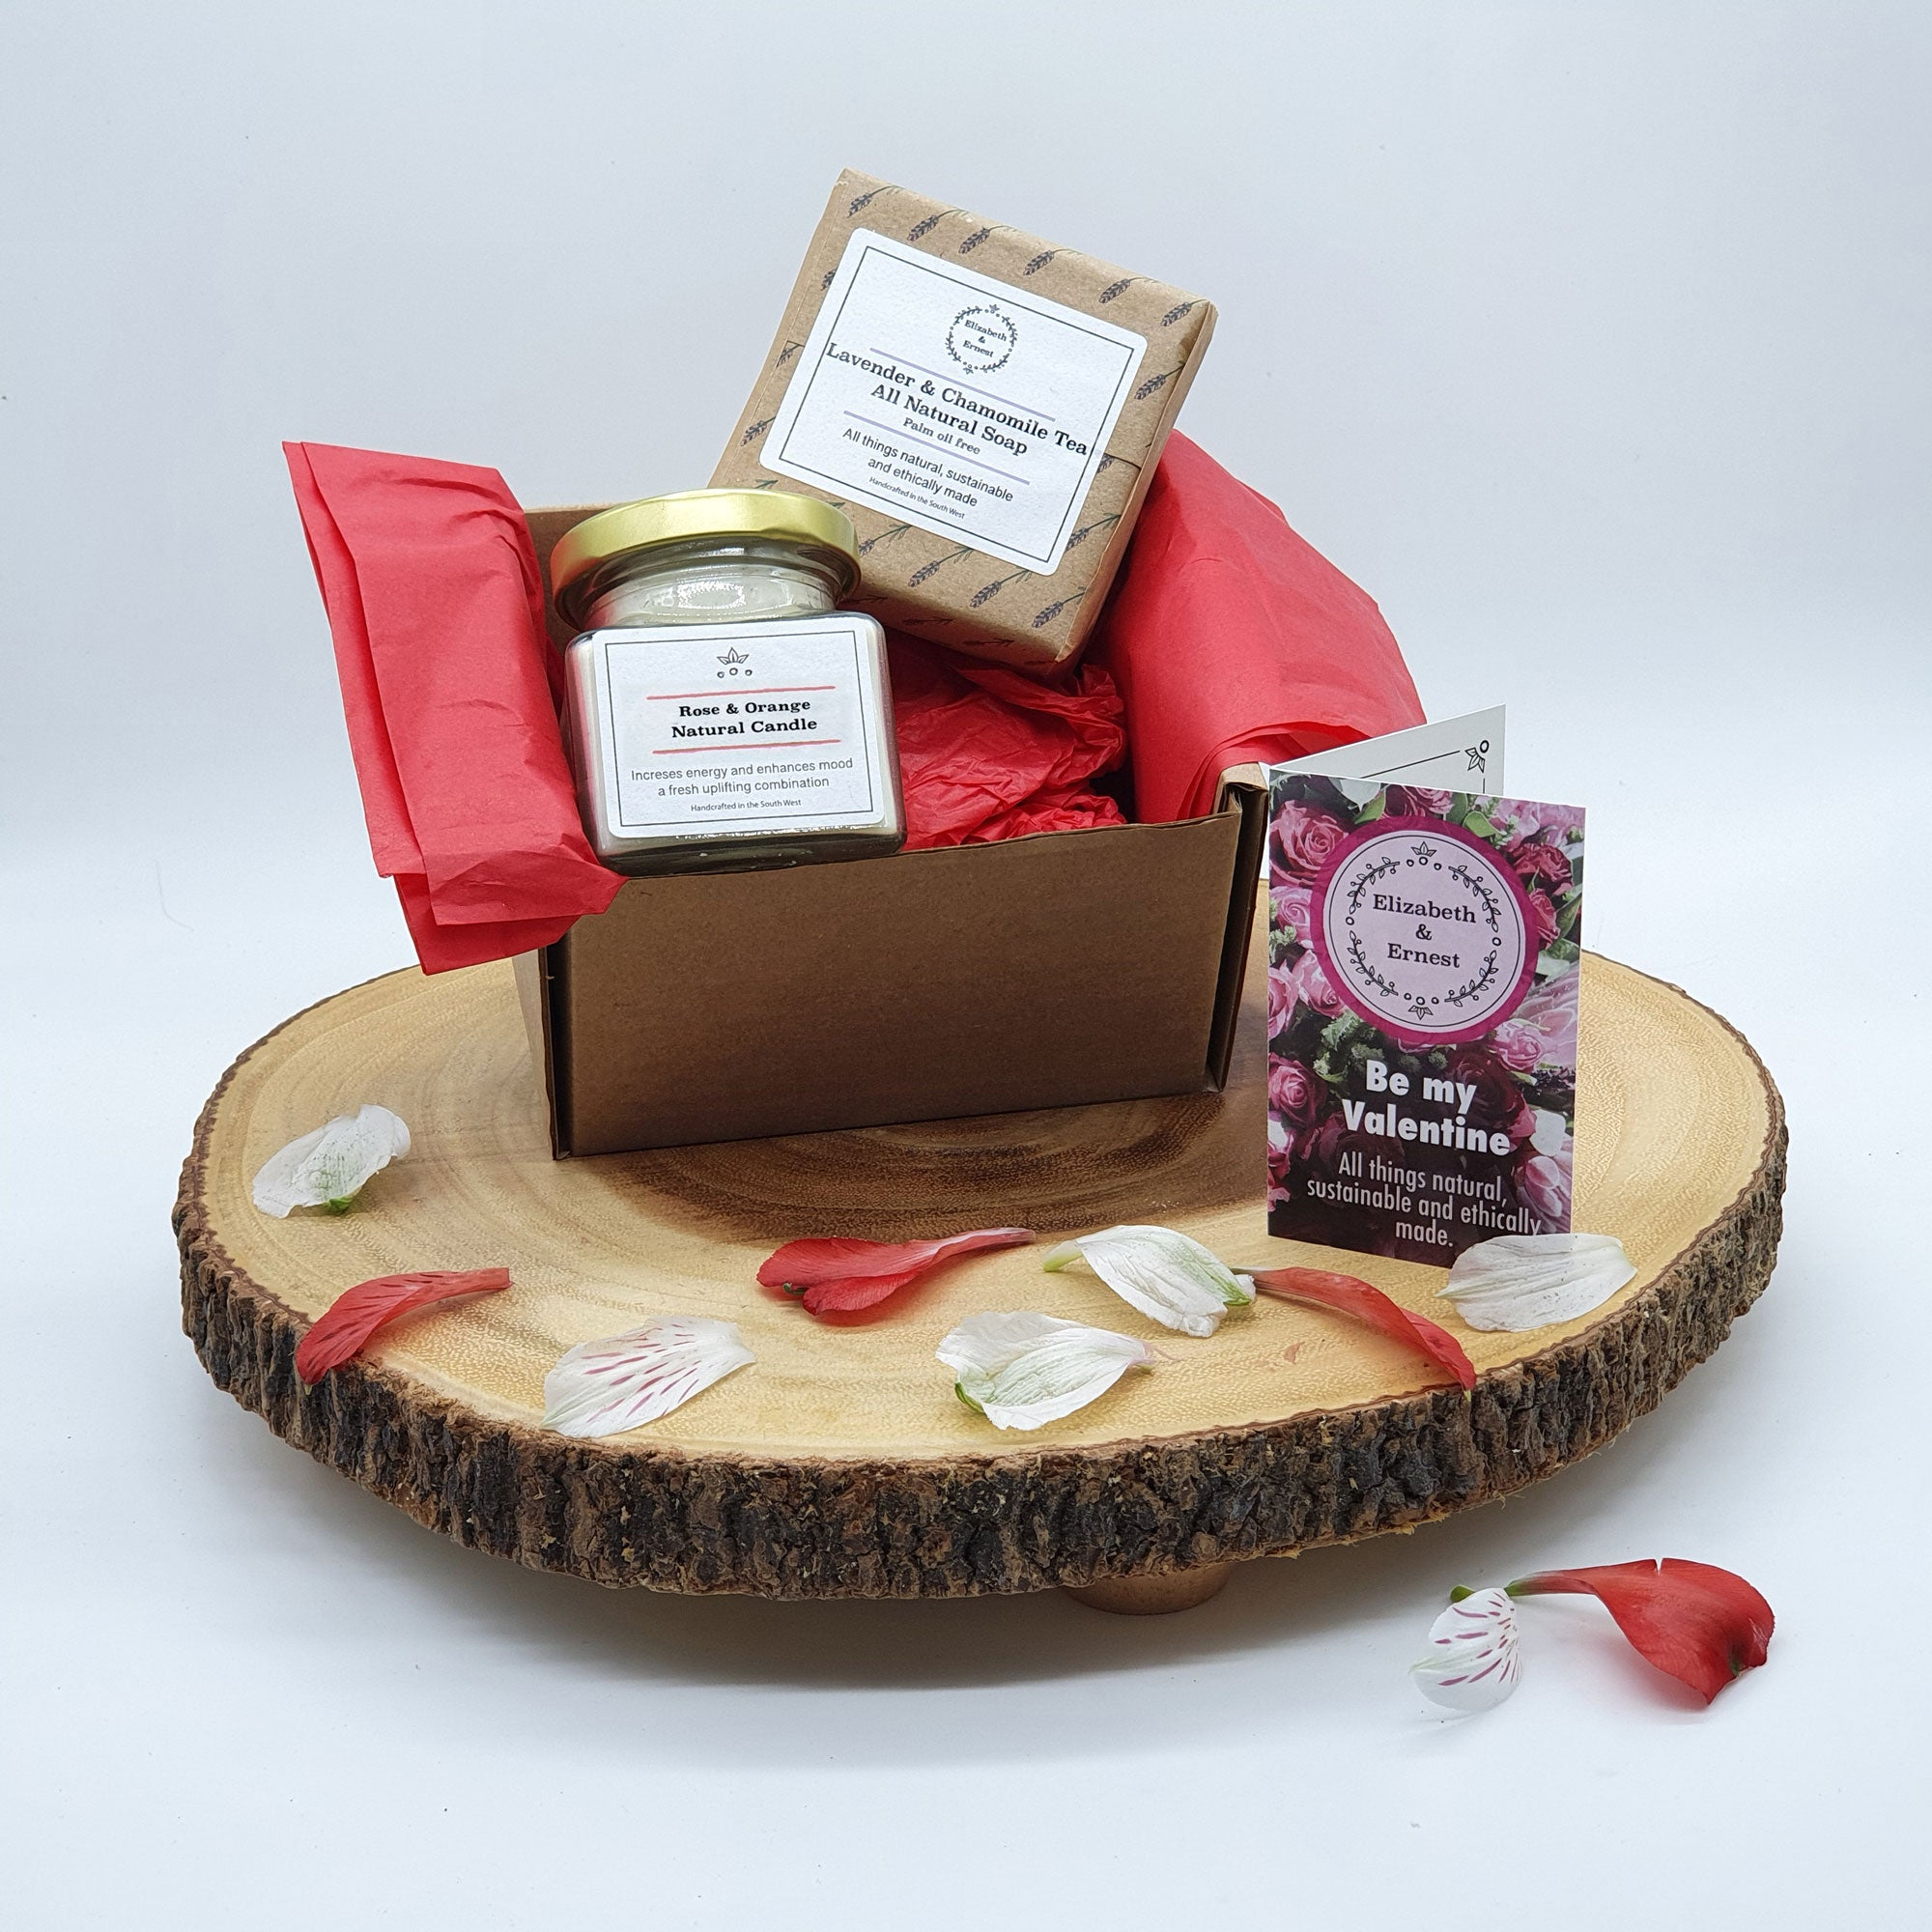 Valentine S Sustainable Gift Set Soy Wax Candle Palm Oil Free Soap Elizabeth Ernest All Things Natural Eco Friendly Ethical Sustainable